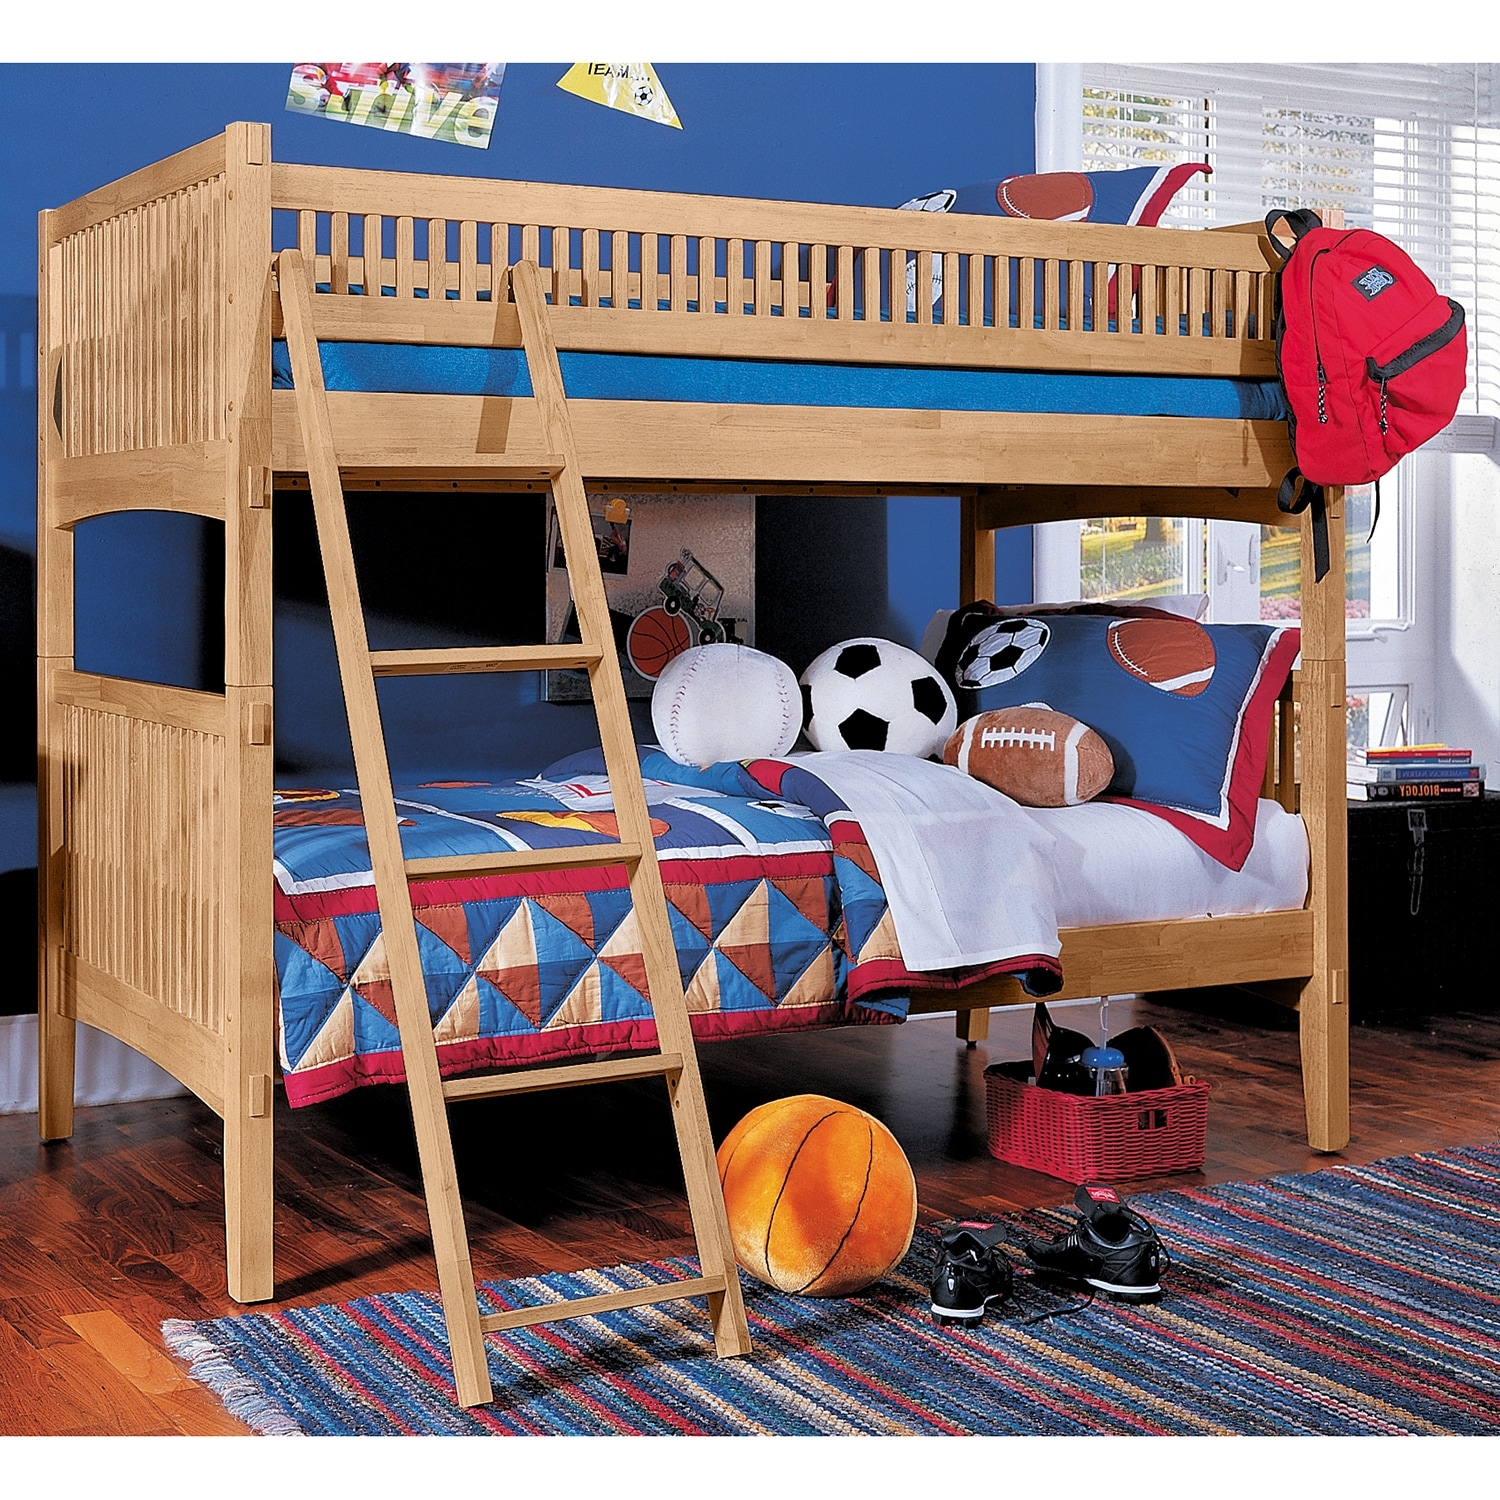 Arts crafts light iii kids furniture twin bunk bed for Kids craft bed